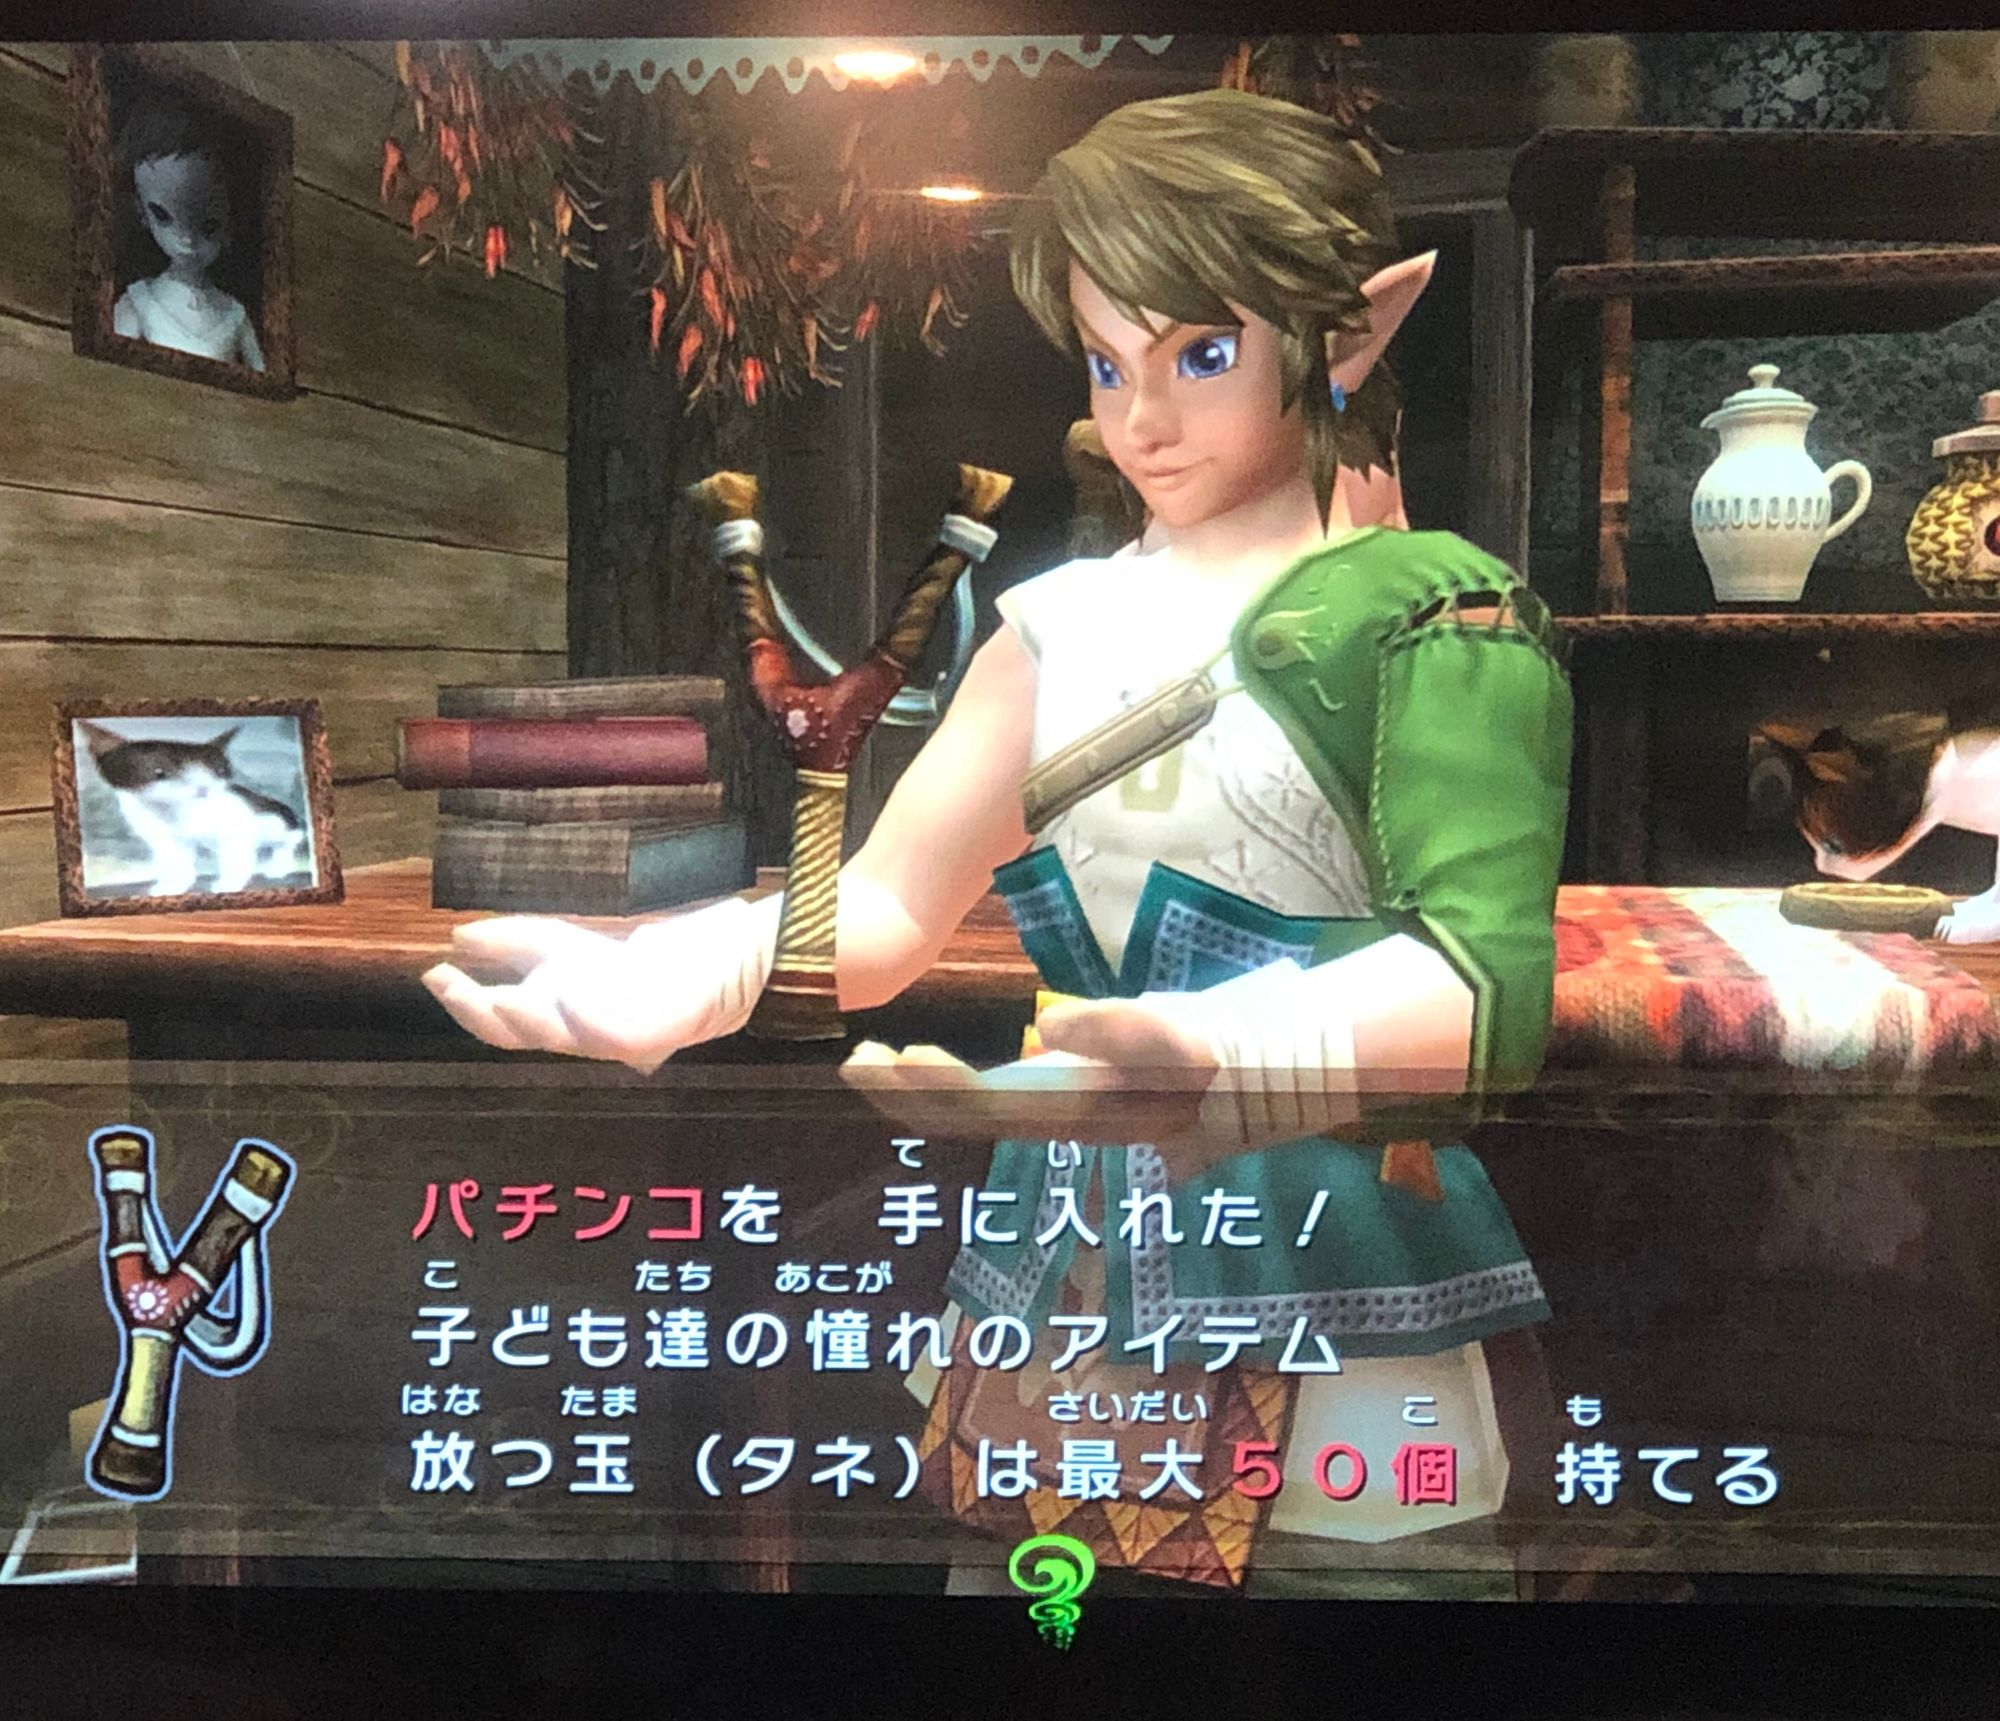 Scene from The Legend of Zelda: Twilight Princess